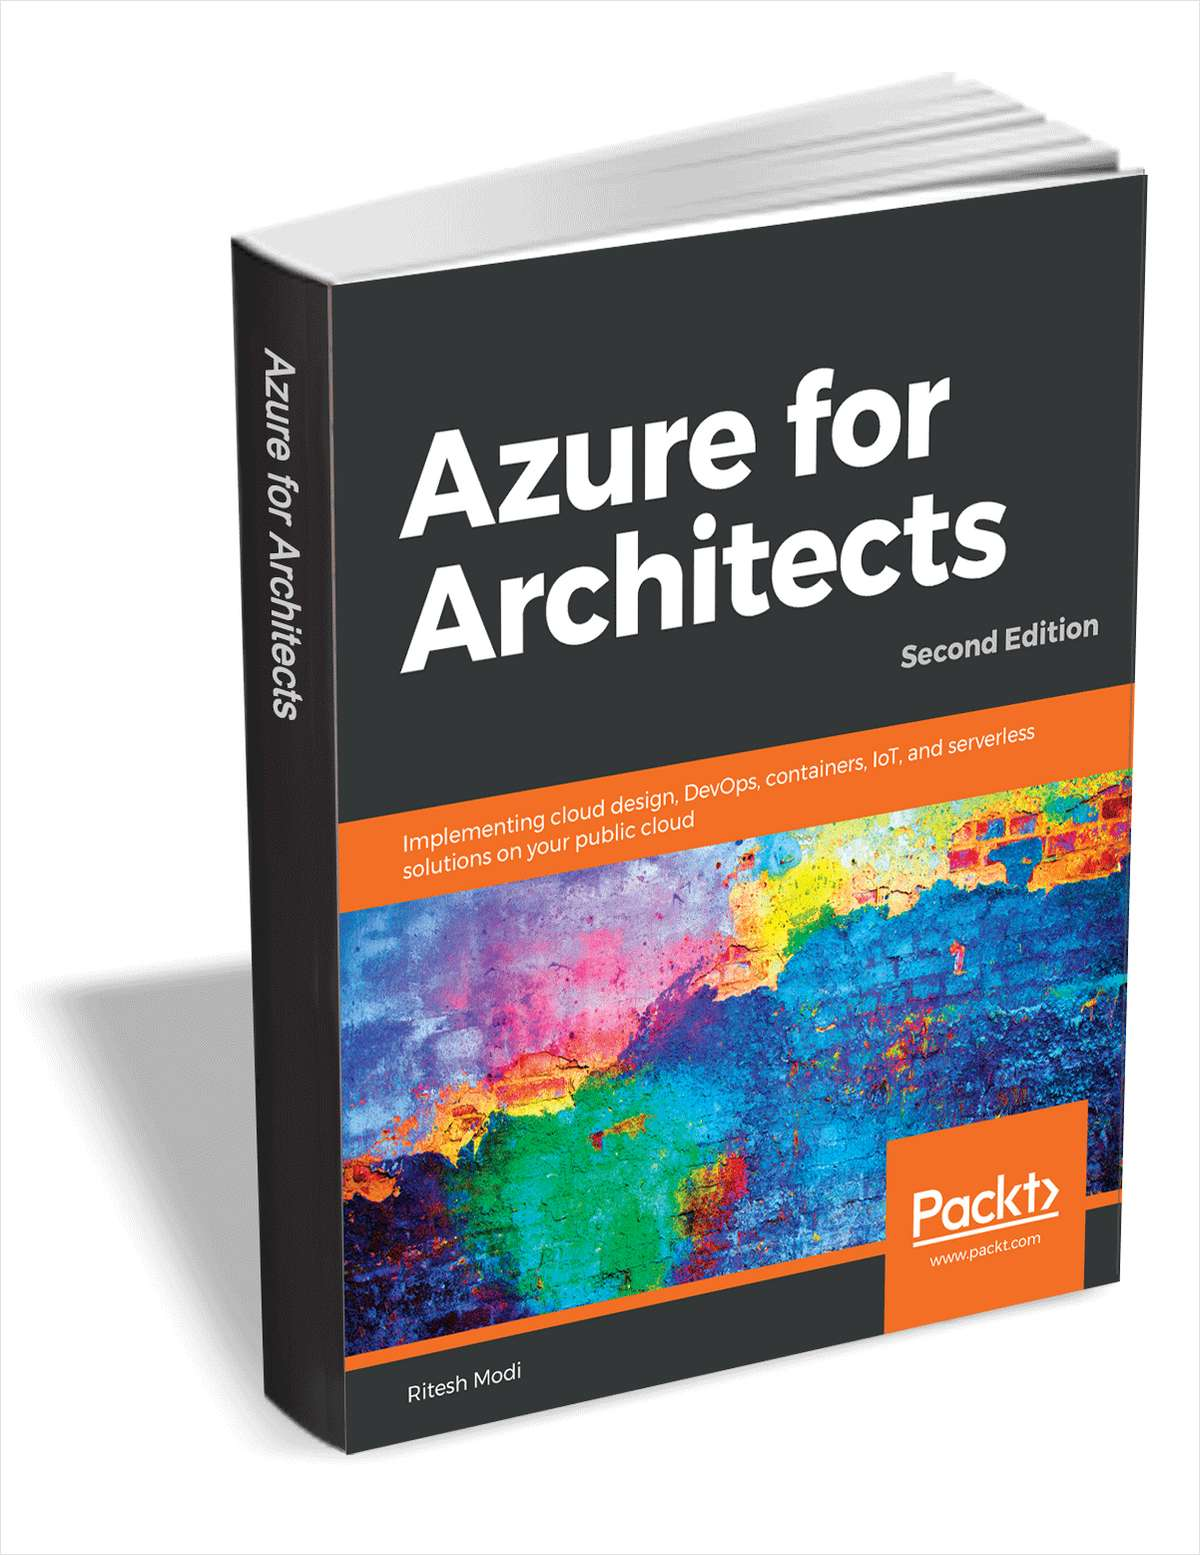 Azure for Architects - Free Sample Chapters